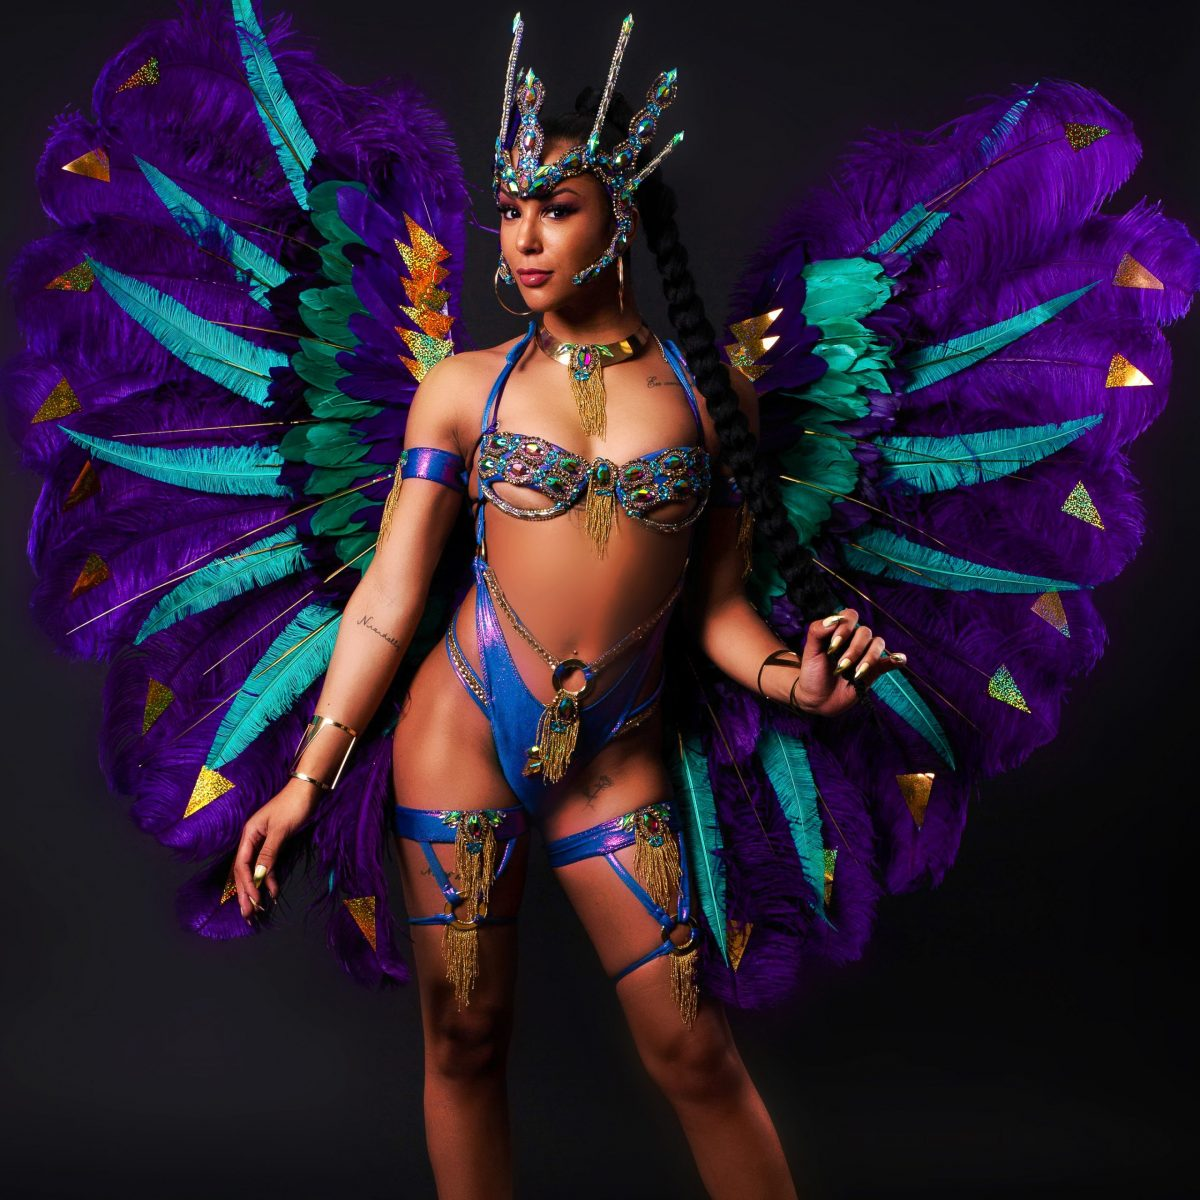 Caribbean Love - Rhythm & Rhyme - Large Shoulderpiece & Crown